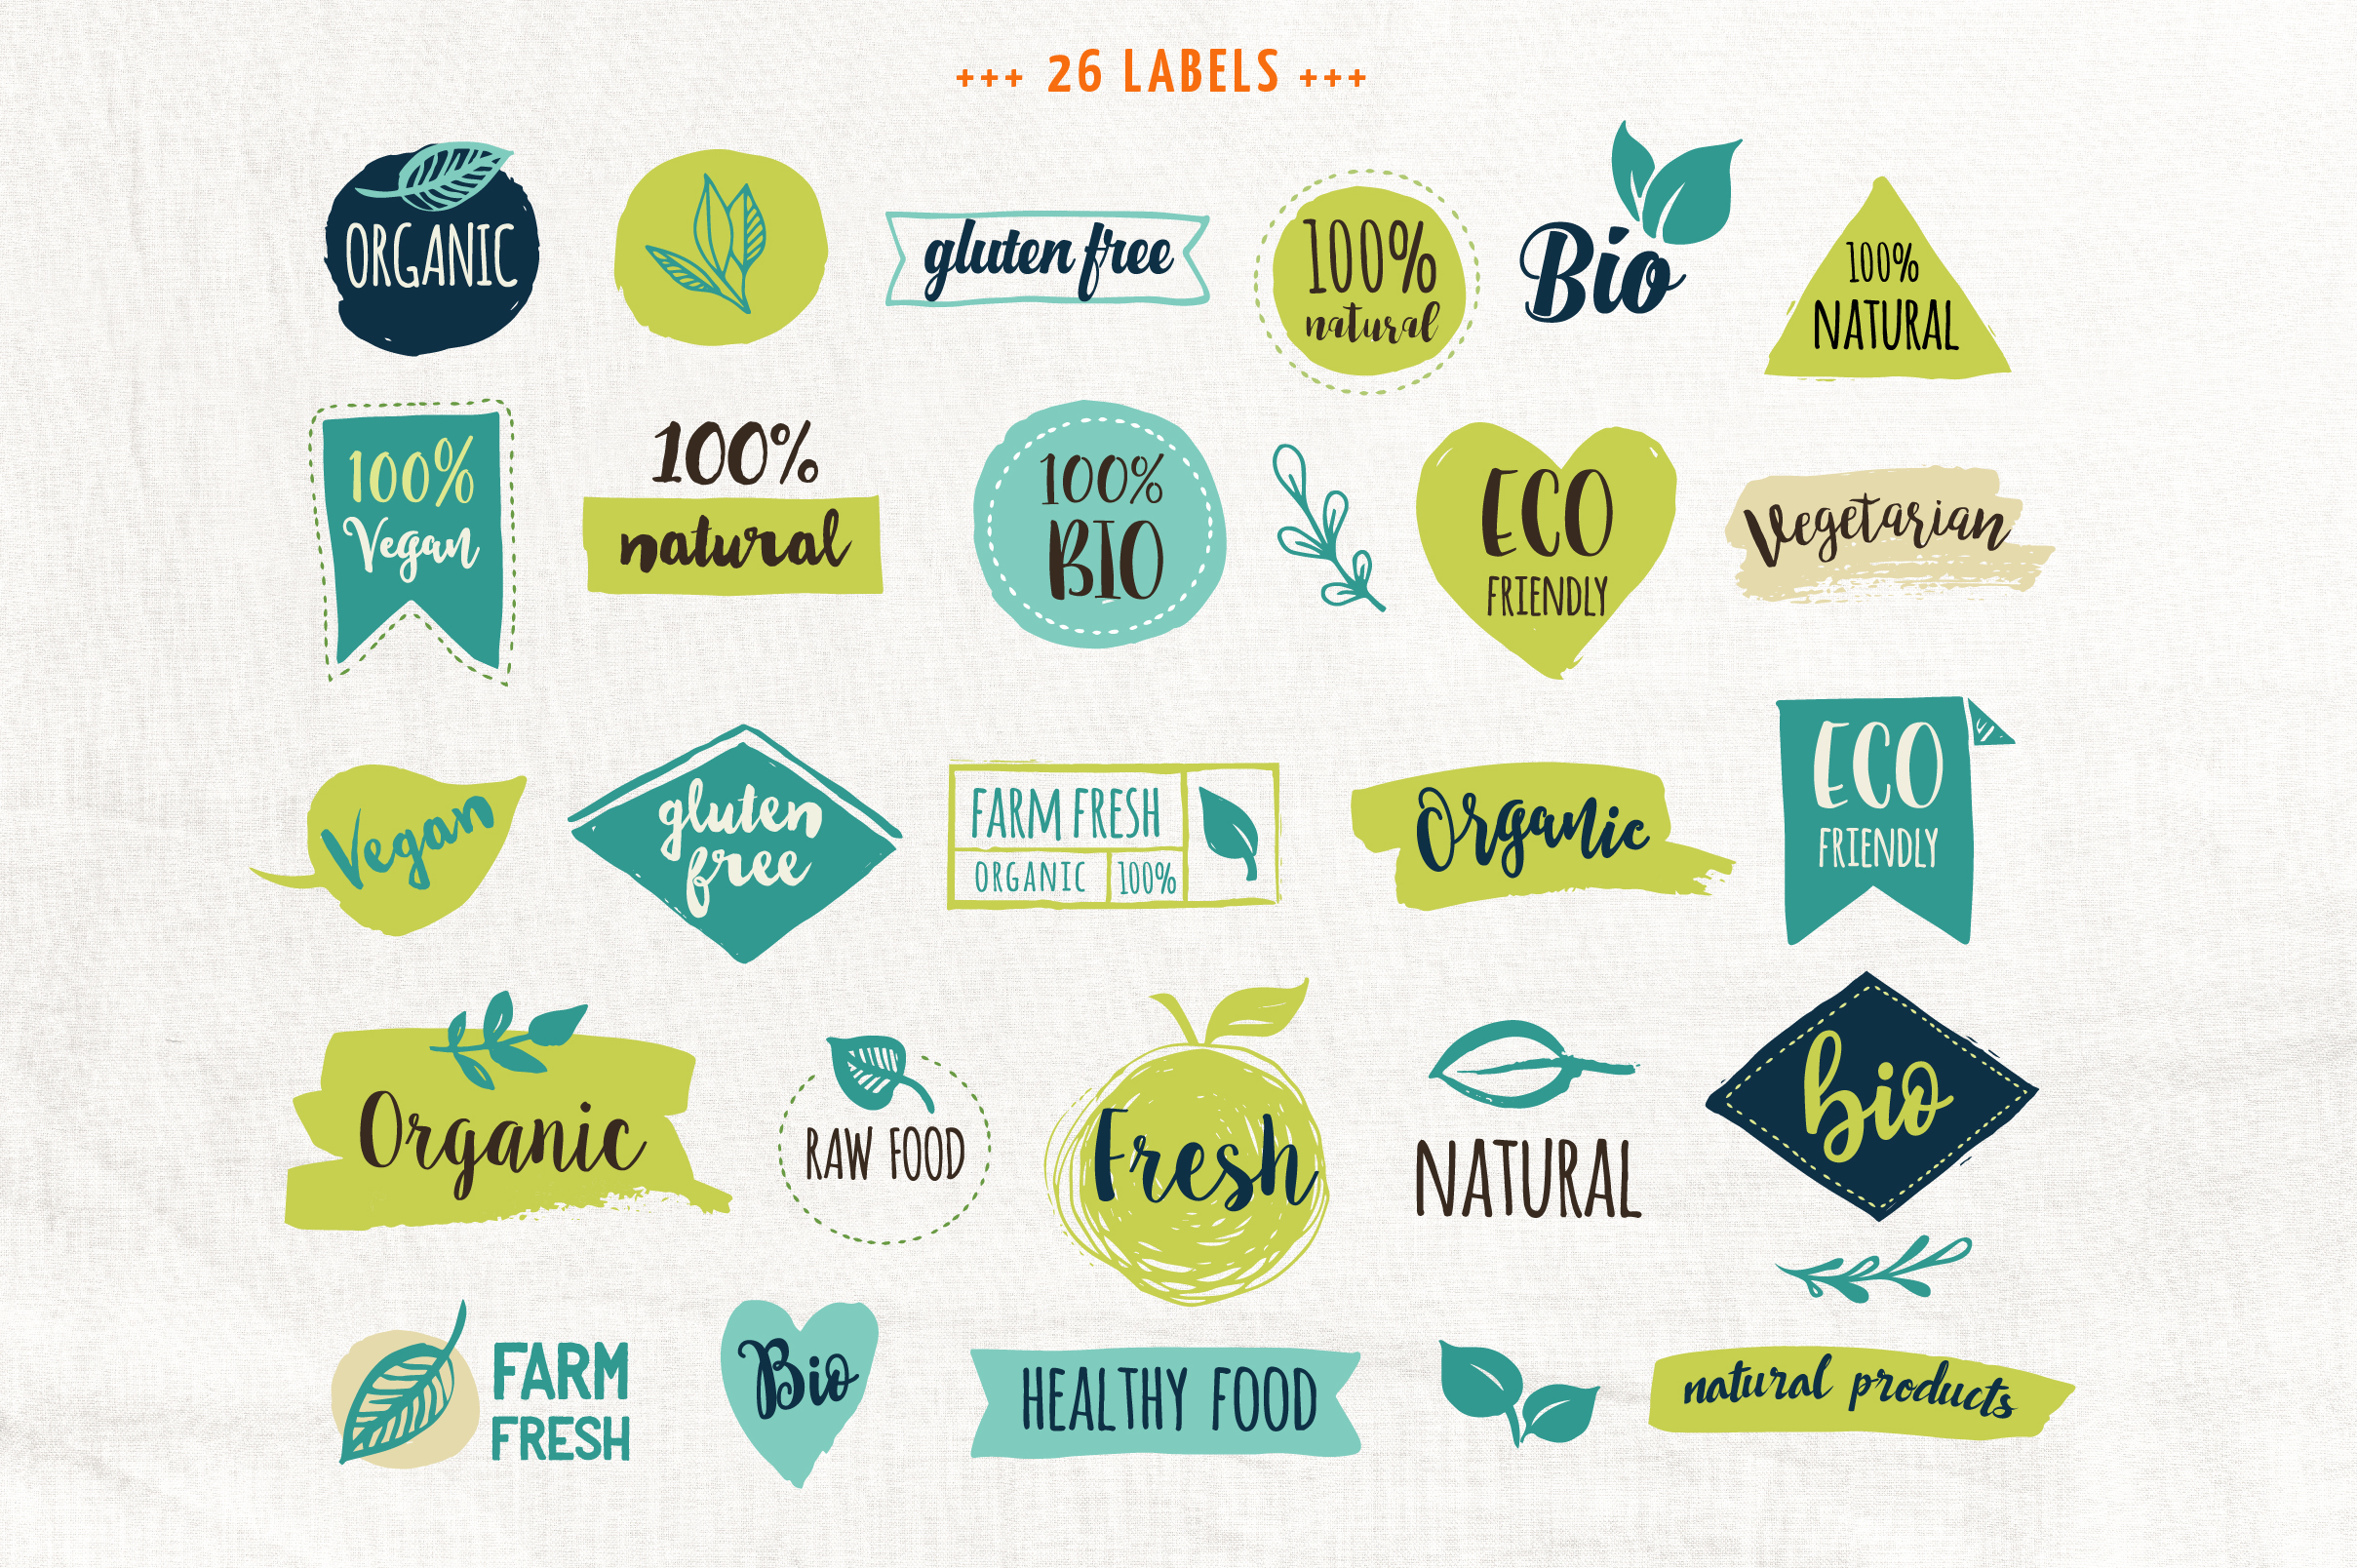 Bio, Organic, Natural & Vegan labels example image 2